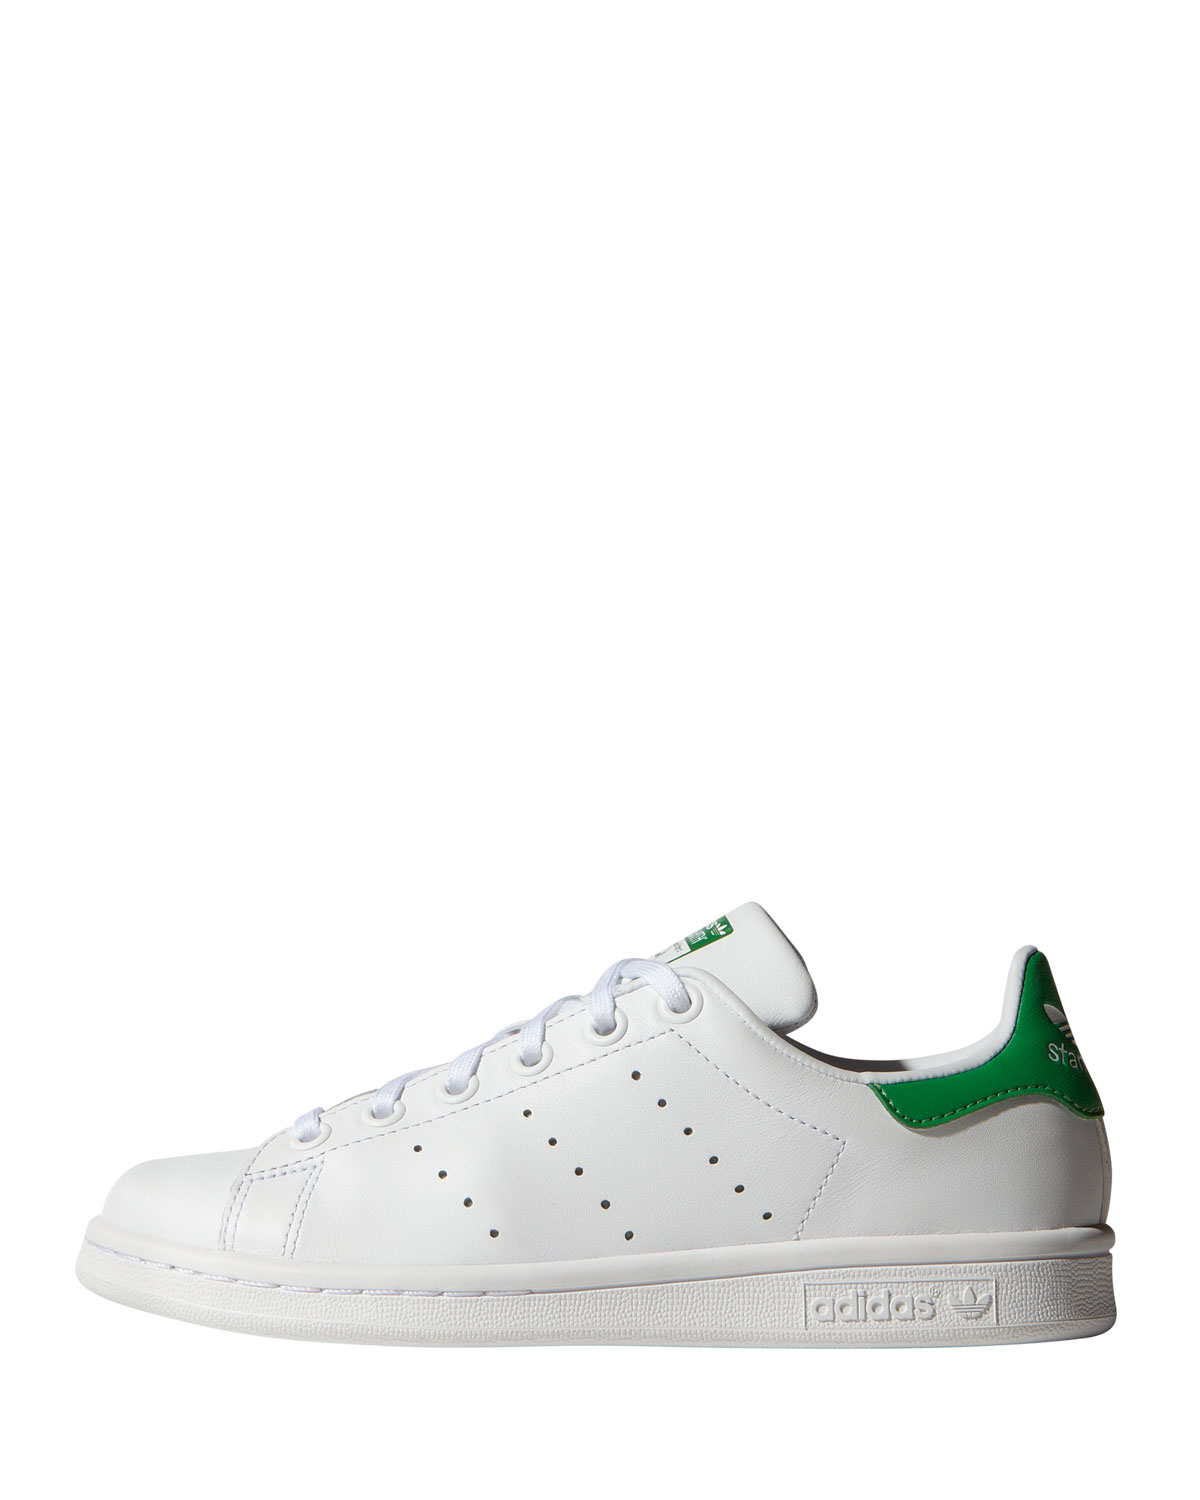 Adidas Kids' Stan Smith Classic Sneakers, Kids